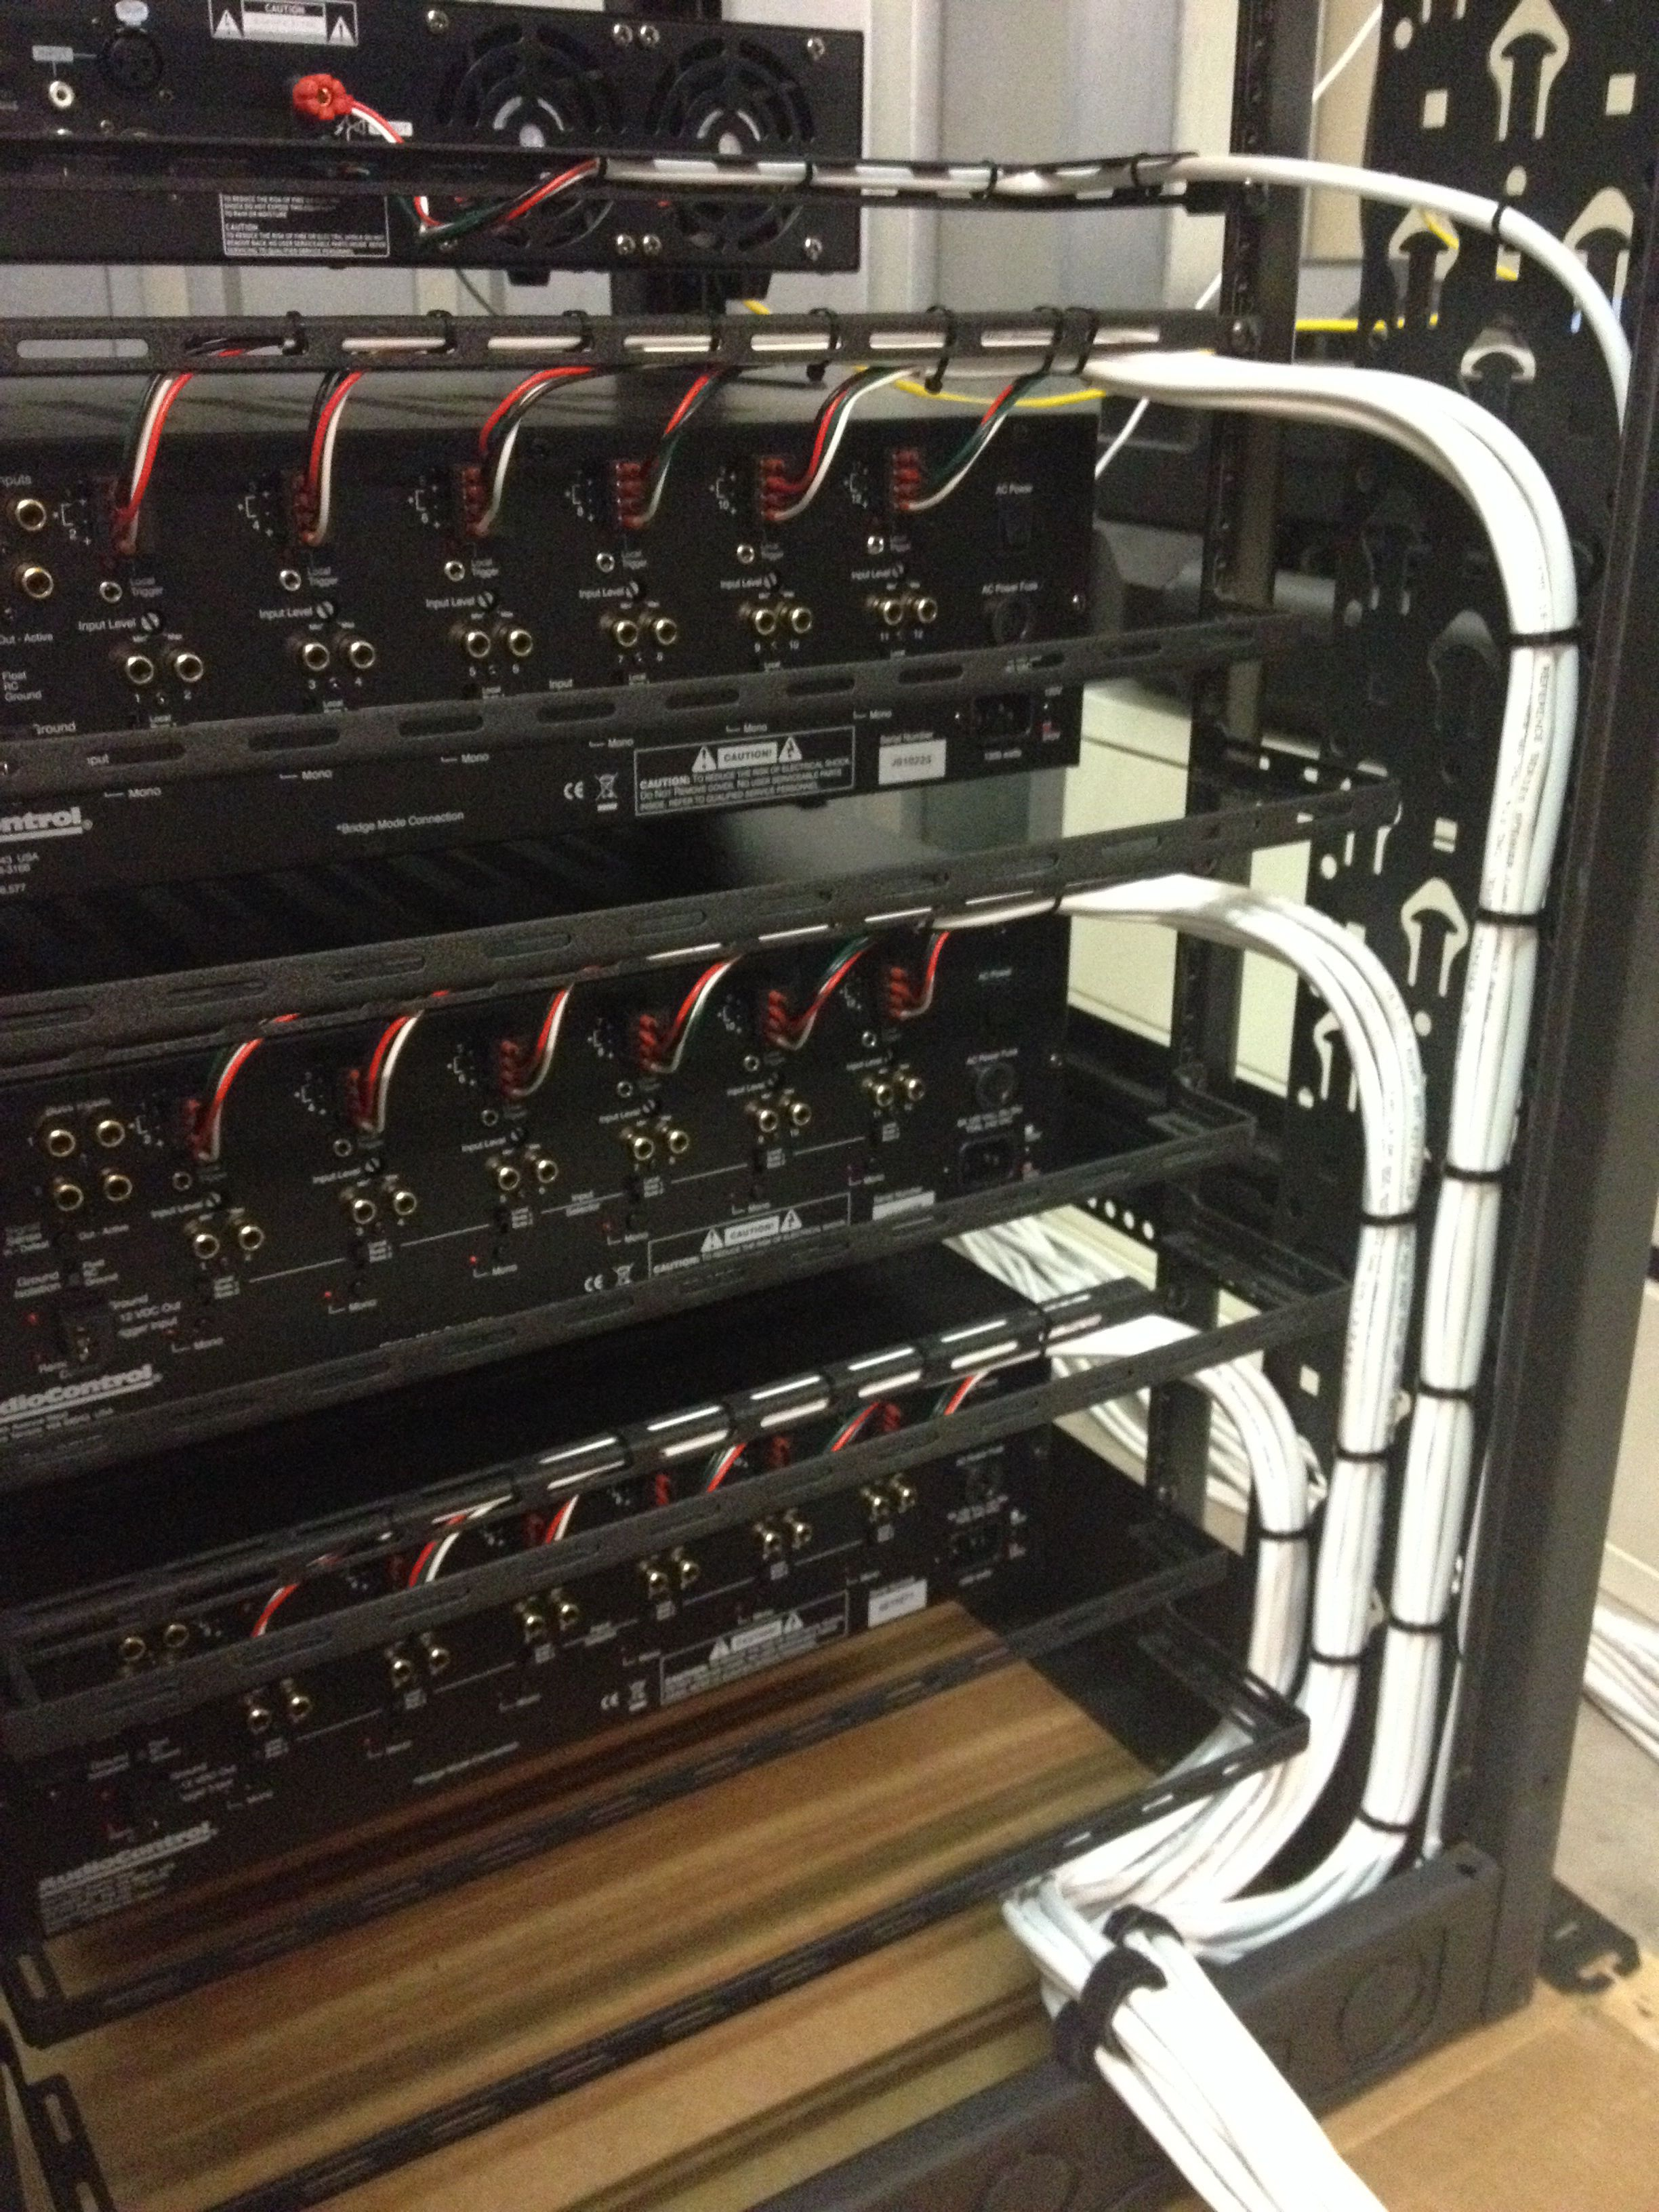 medium resolution of rear view of equipment rack housing audio distribution system showing speaker cabling installation